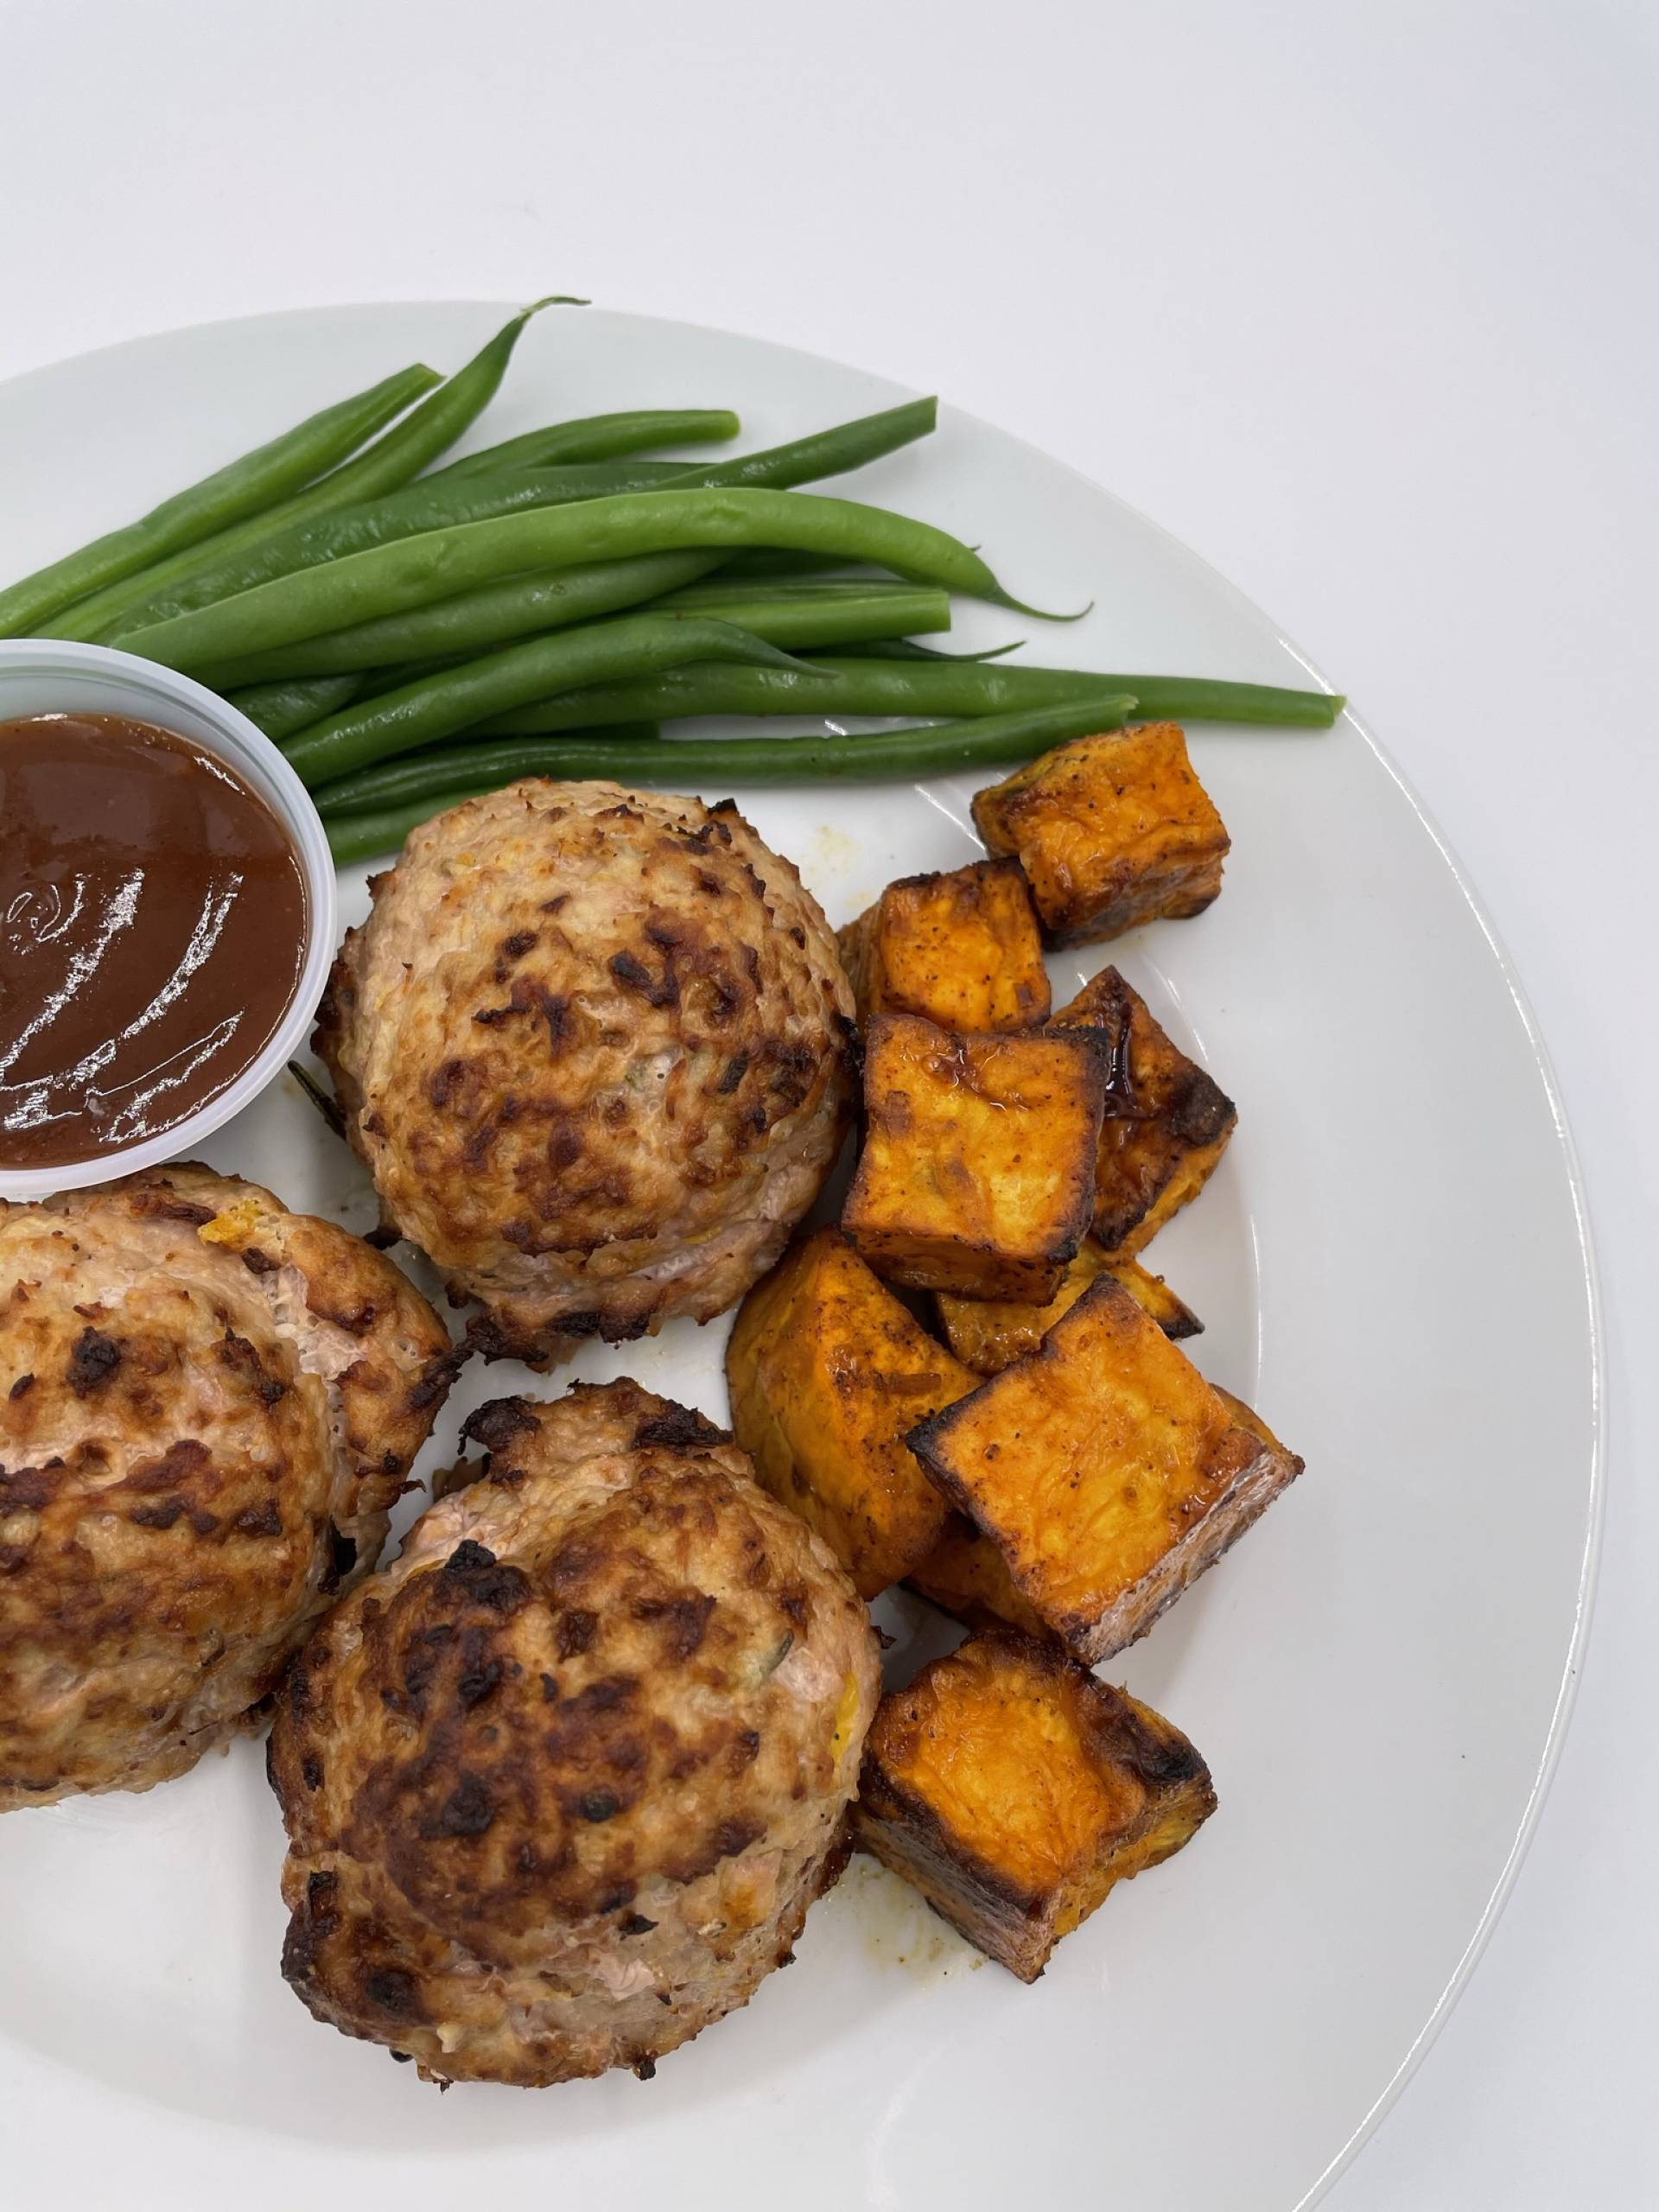 Macro Meal: Turkey Meatballs | Served with Texmex Sweet Potatoes & Green Beans